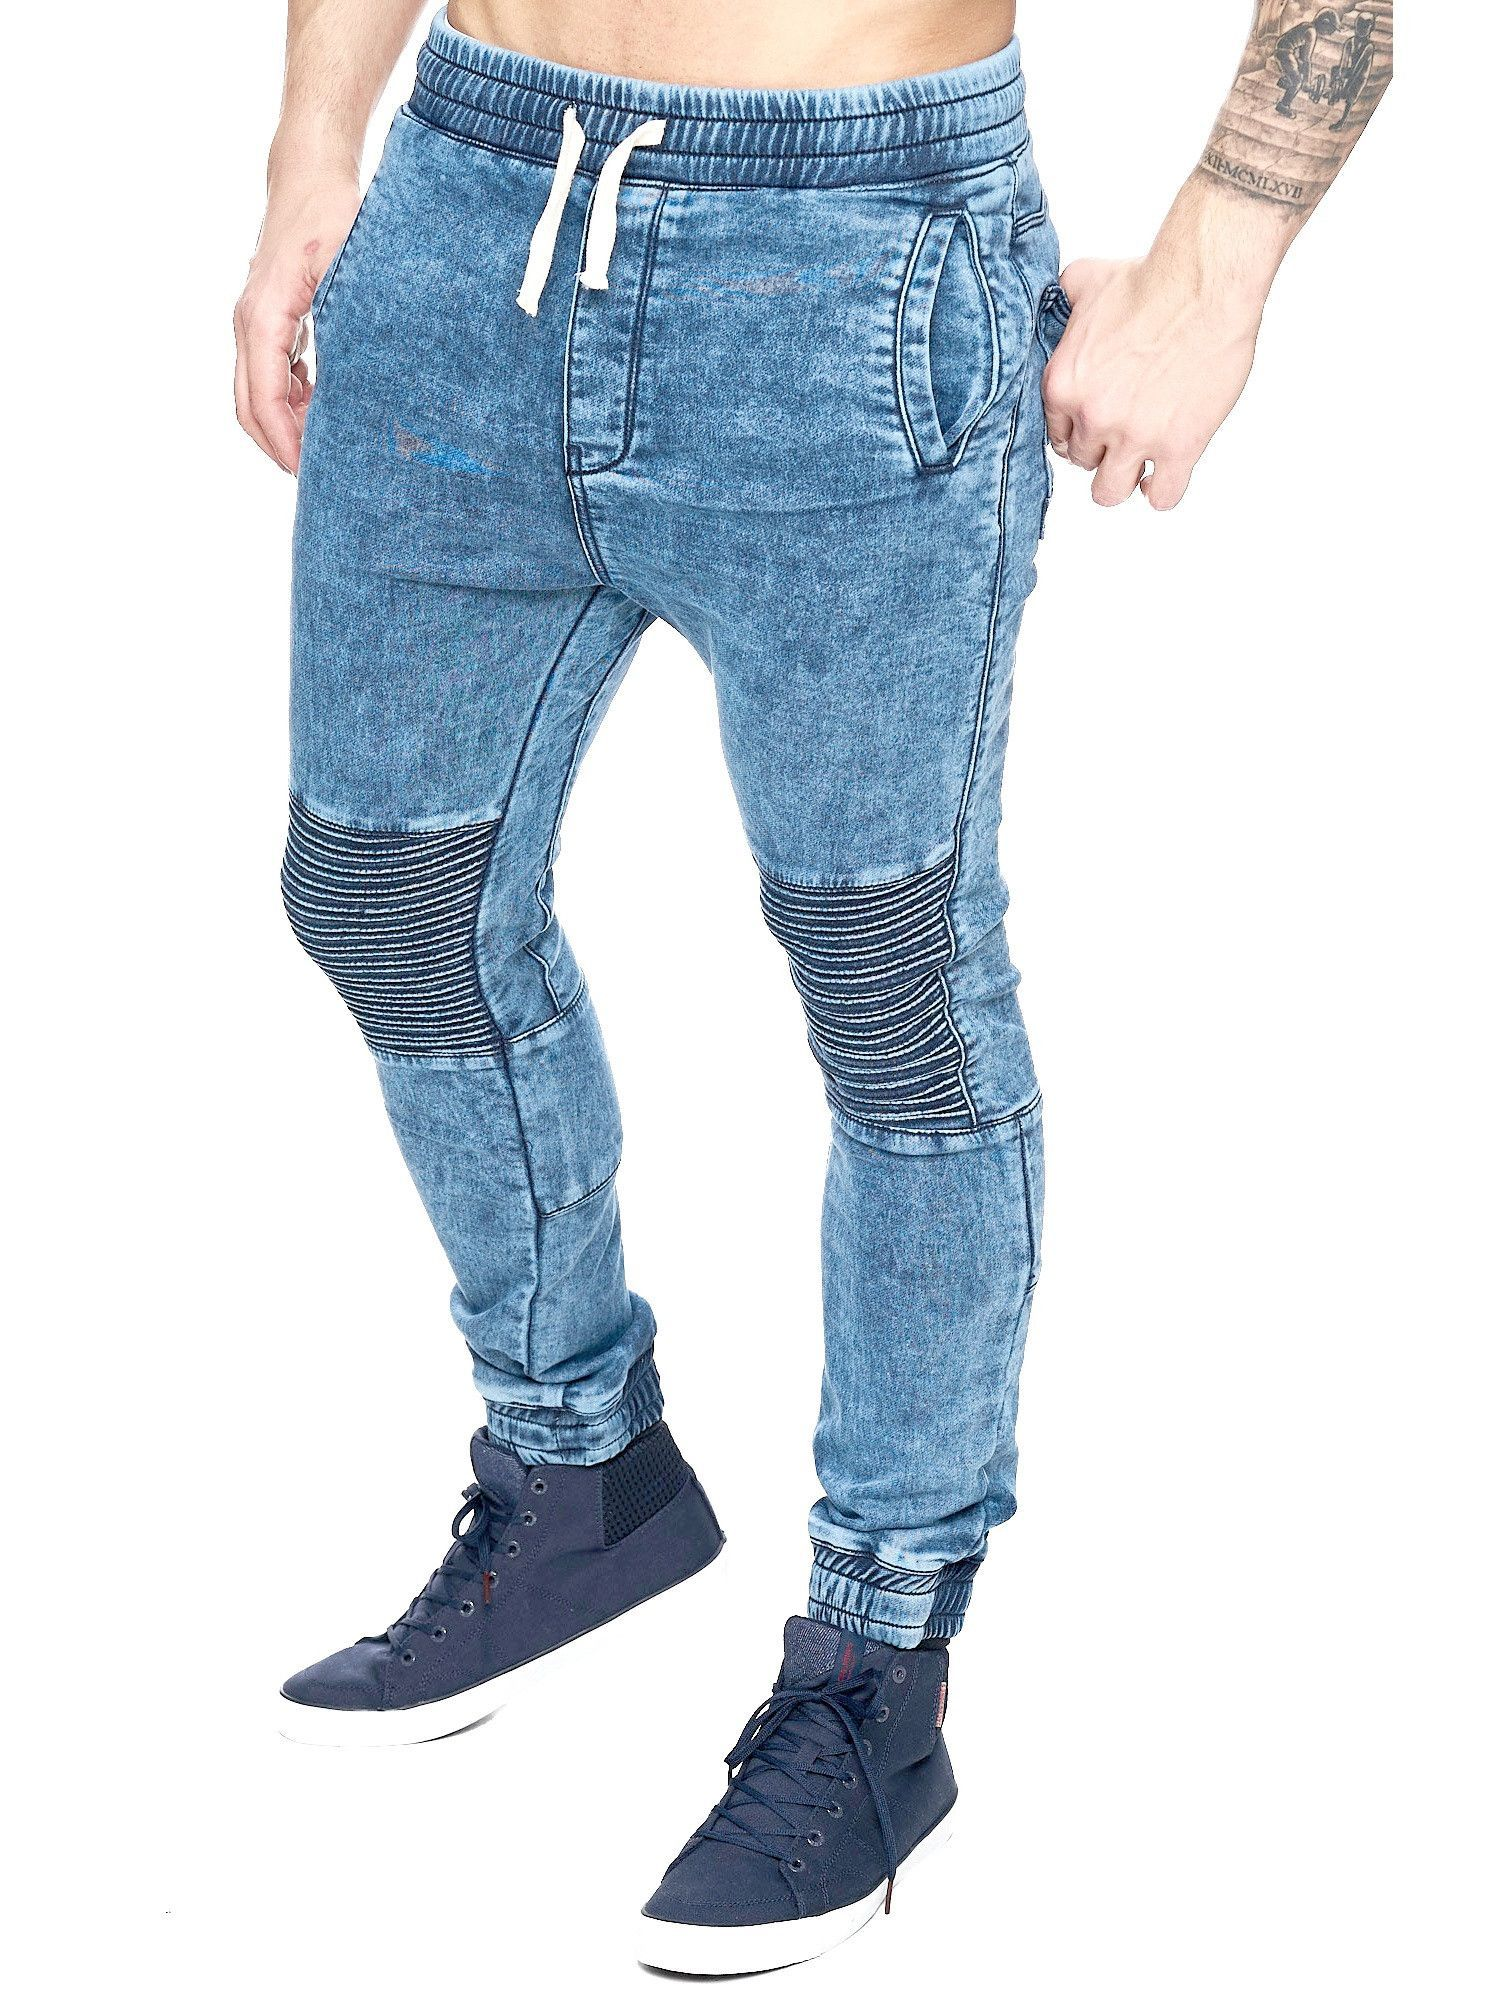 d7466fa0186a Slim Fit Washed Blue Biker Jogger Jeans PLEASE NOTE THE LENGTH IS 33 (FOR  ALL WAIST SIZES) size   W x L (Waist x Length) -100% Cotton -No Fly -SLIM  FIT